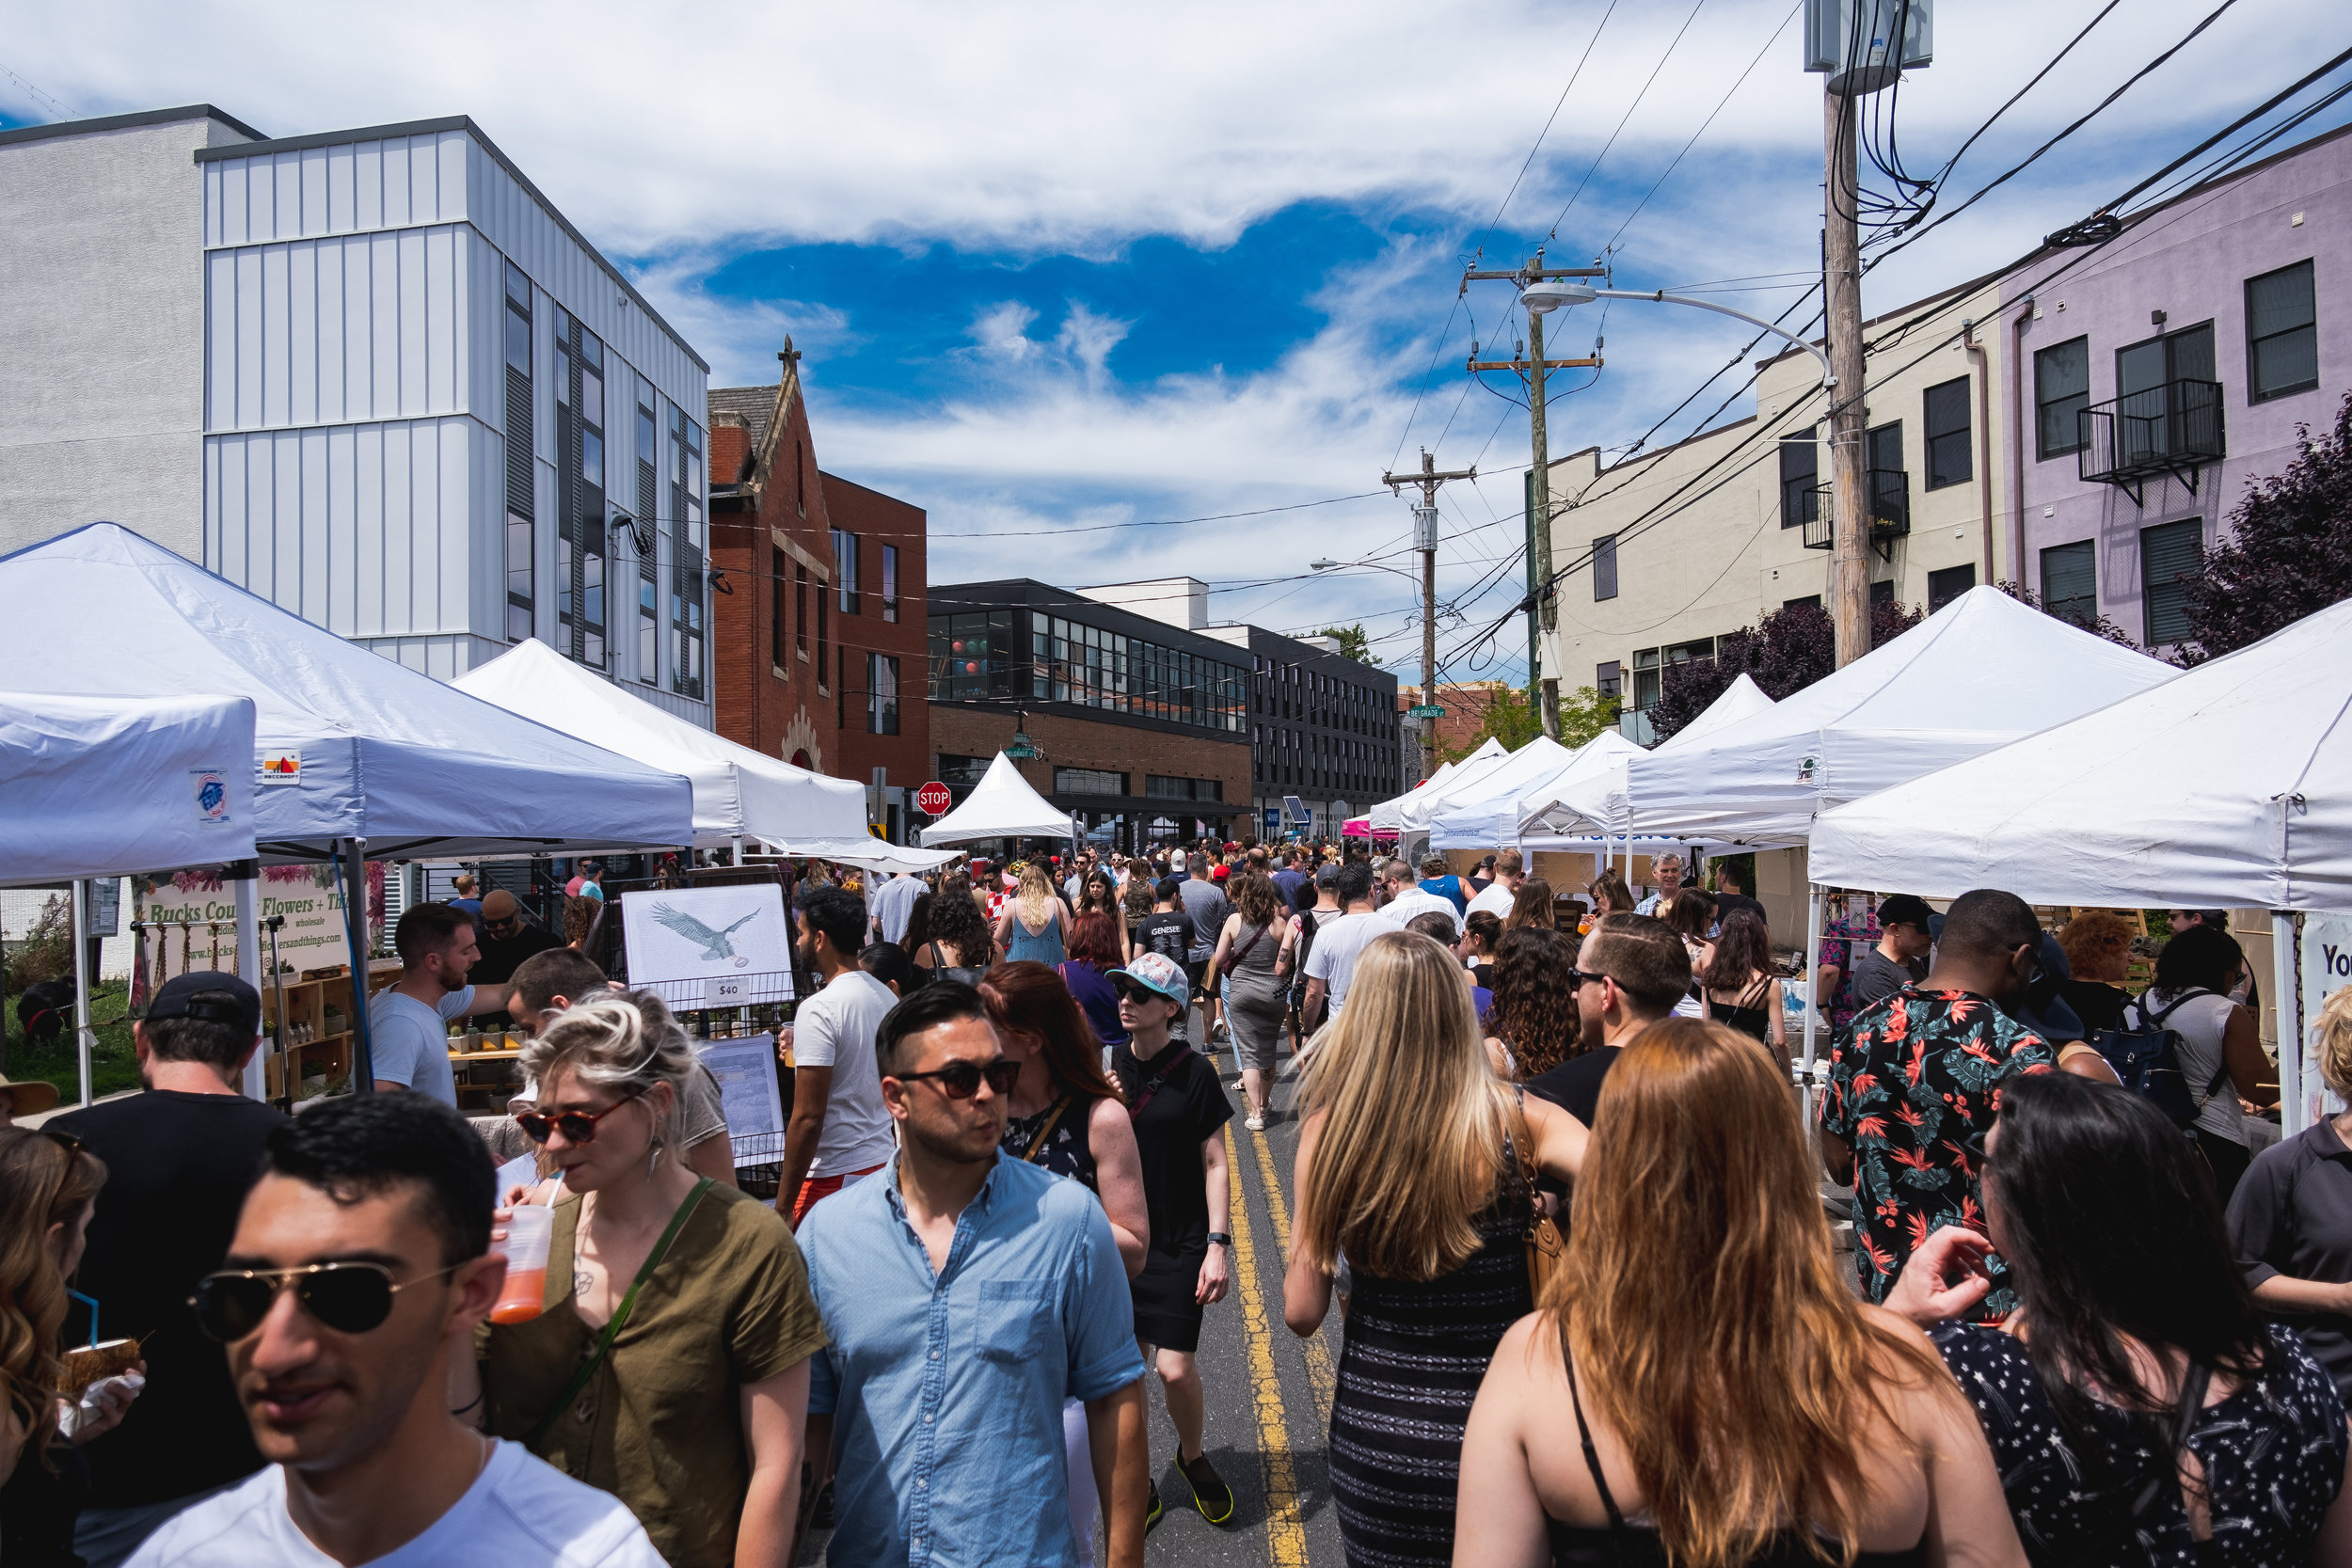 2019_PHILLY BEER WEEK_FISHTOWN FESTIVALE_EVENTS_THE PHILLY CHECKLIST-6.jpg